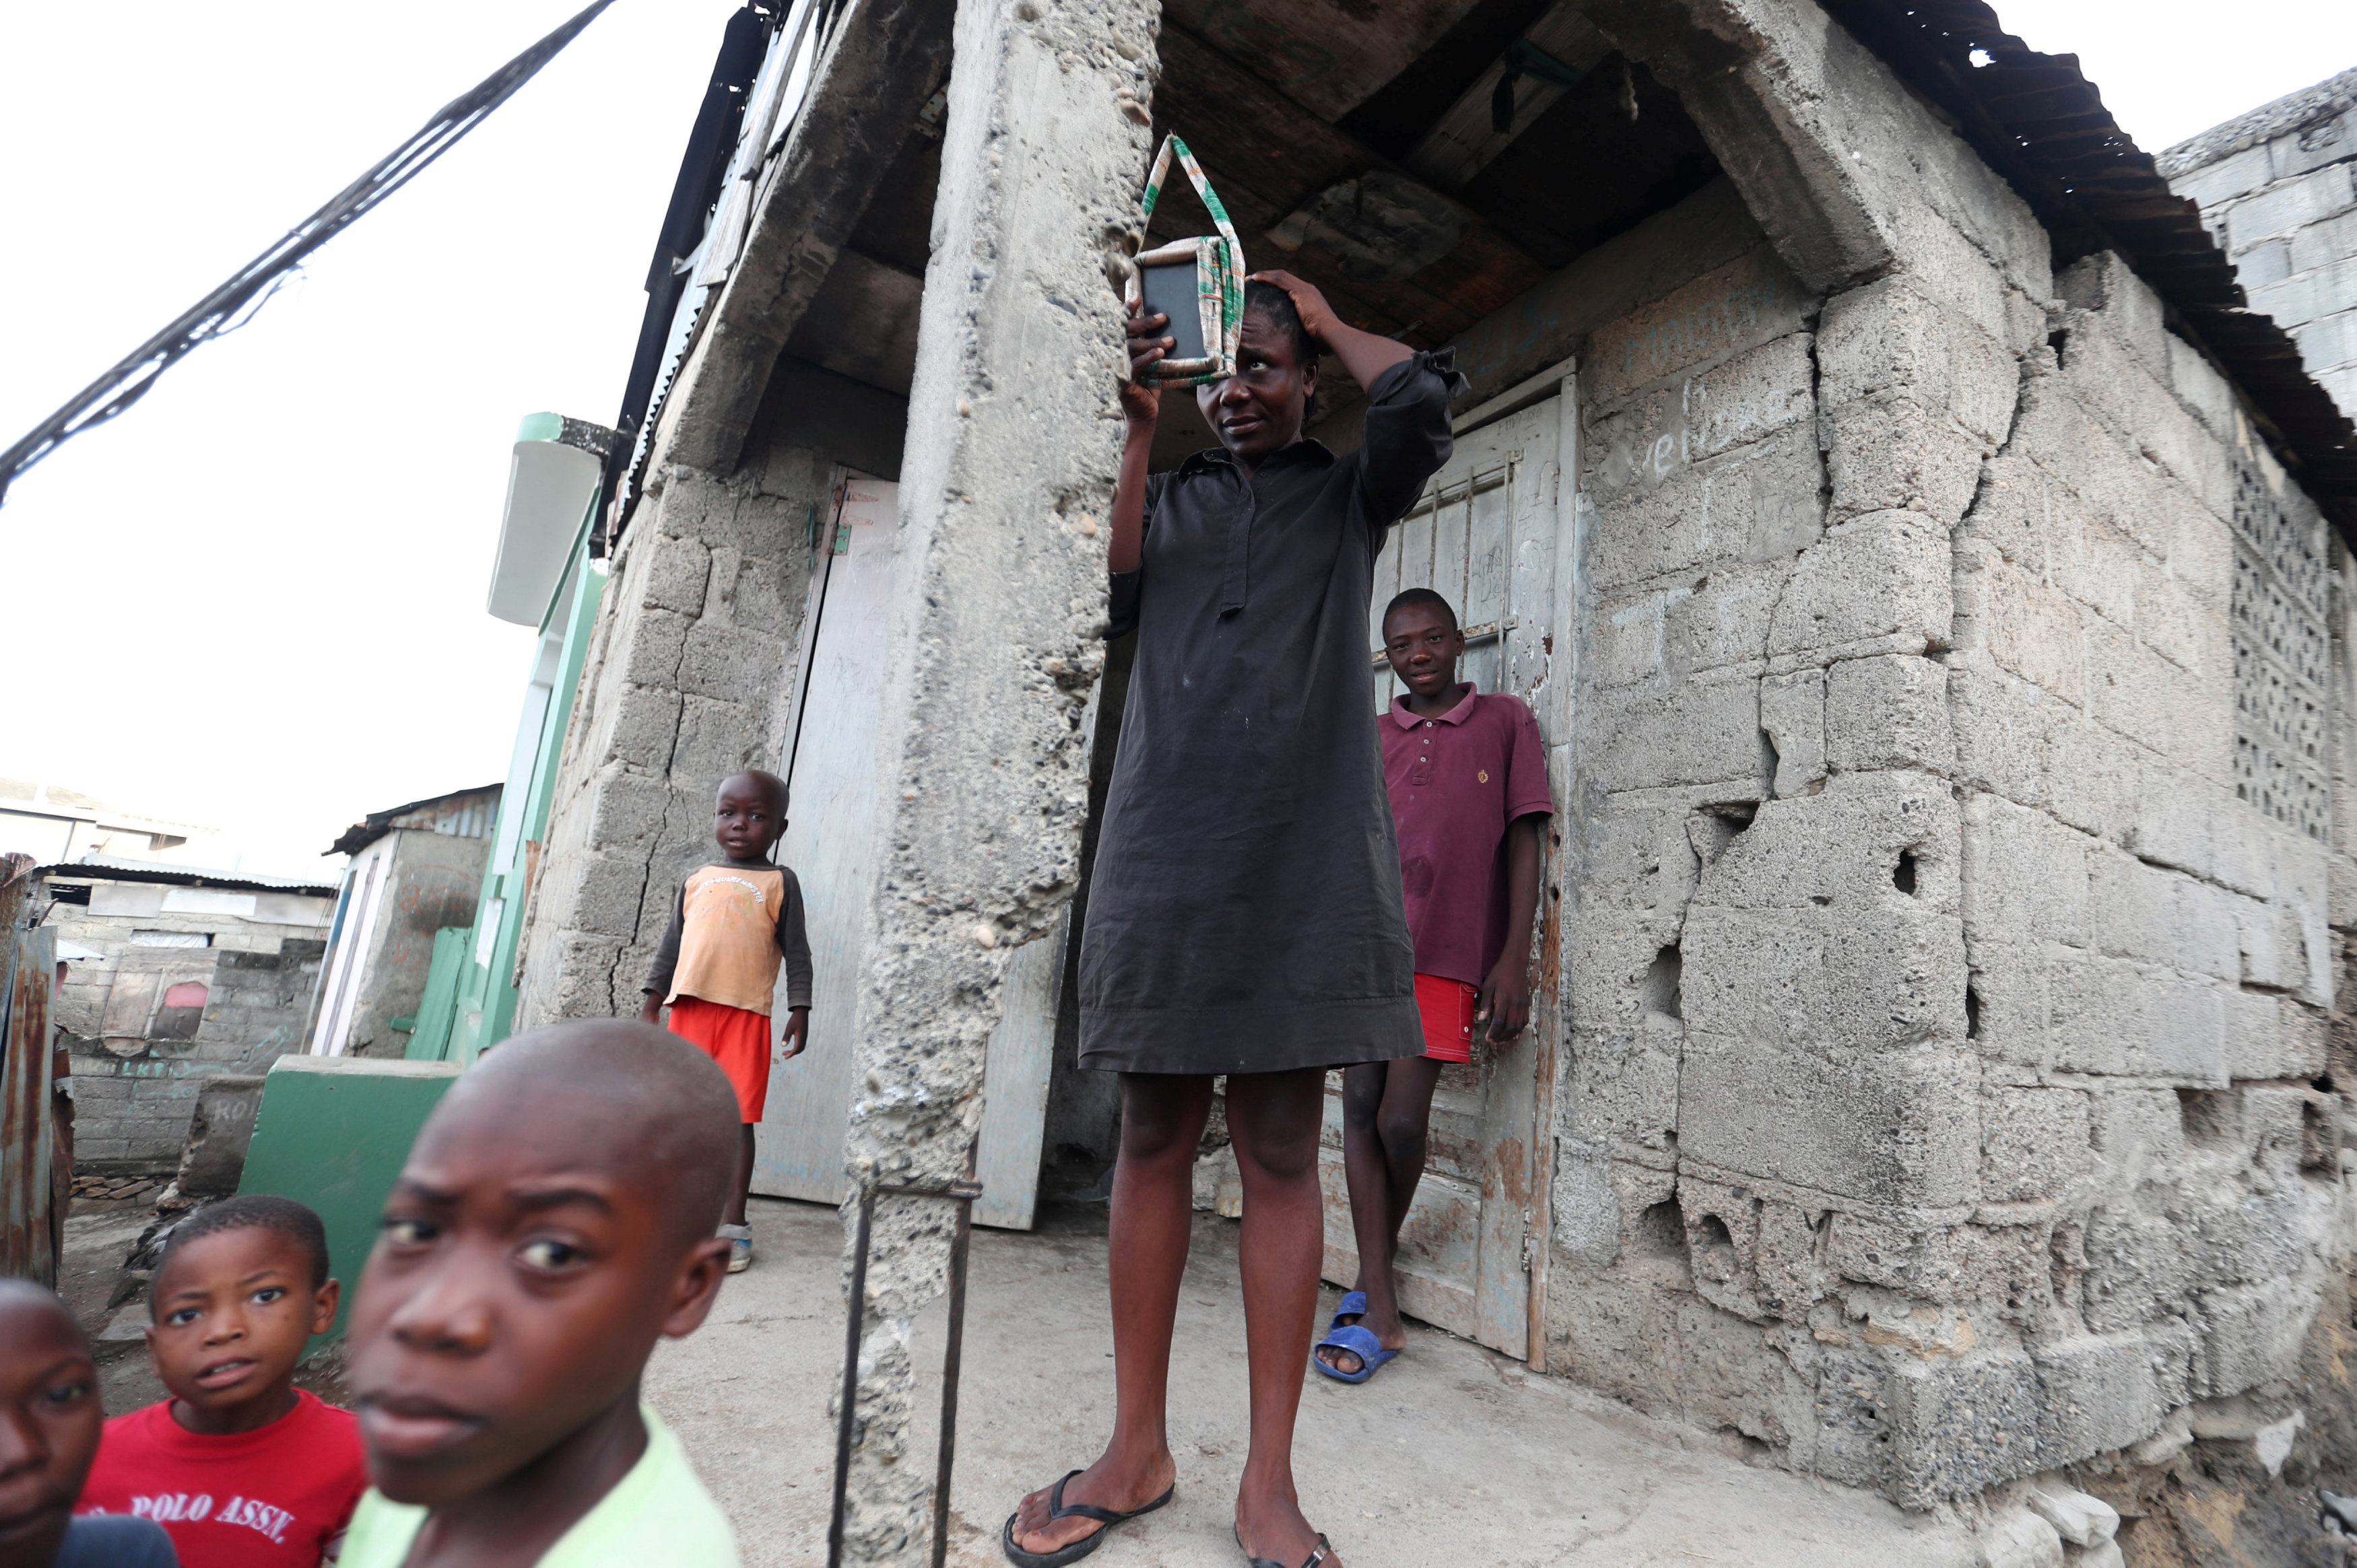 A woman looks at herself in a mirror while standing outside her house after it was damaged in an earthquake, that hit northern Haiti late on Saturday, in Port-de-Paix